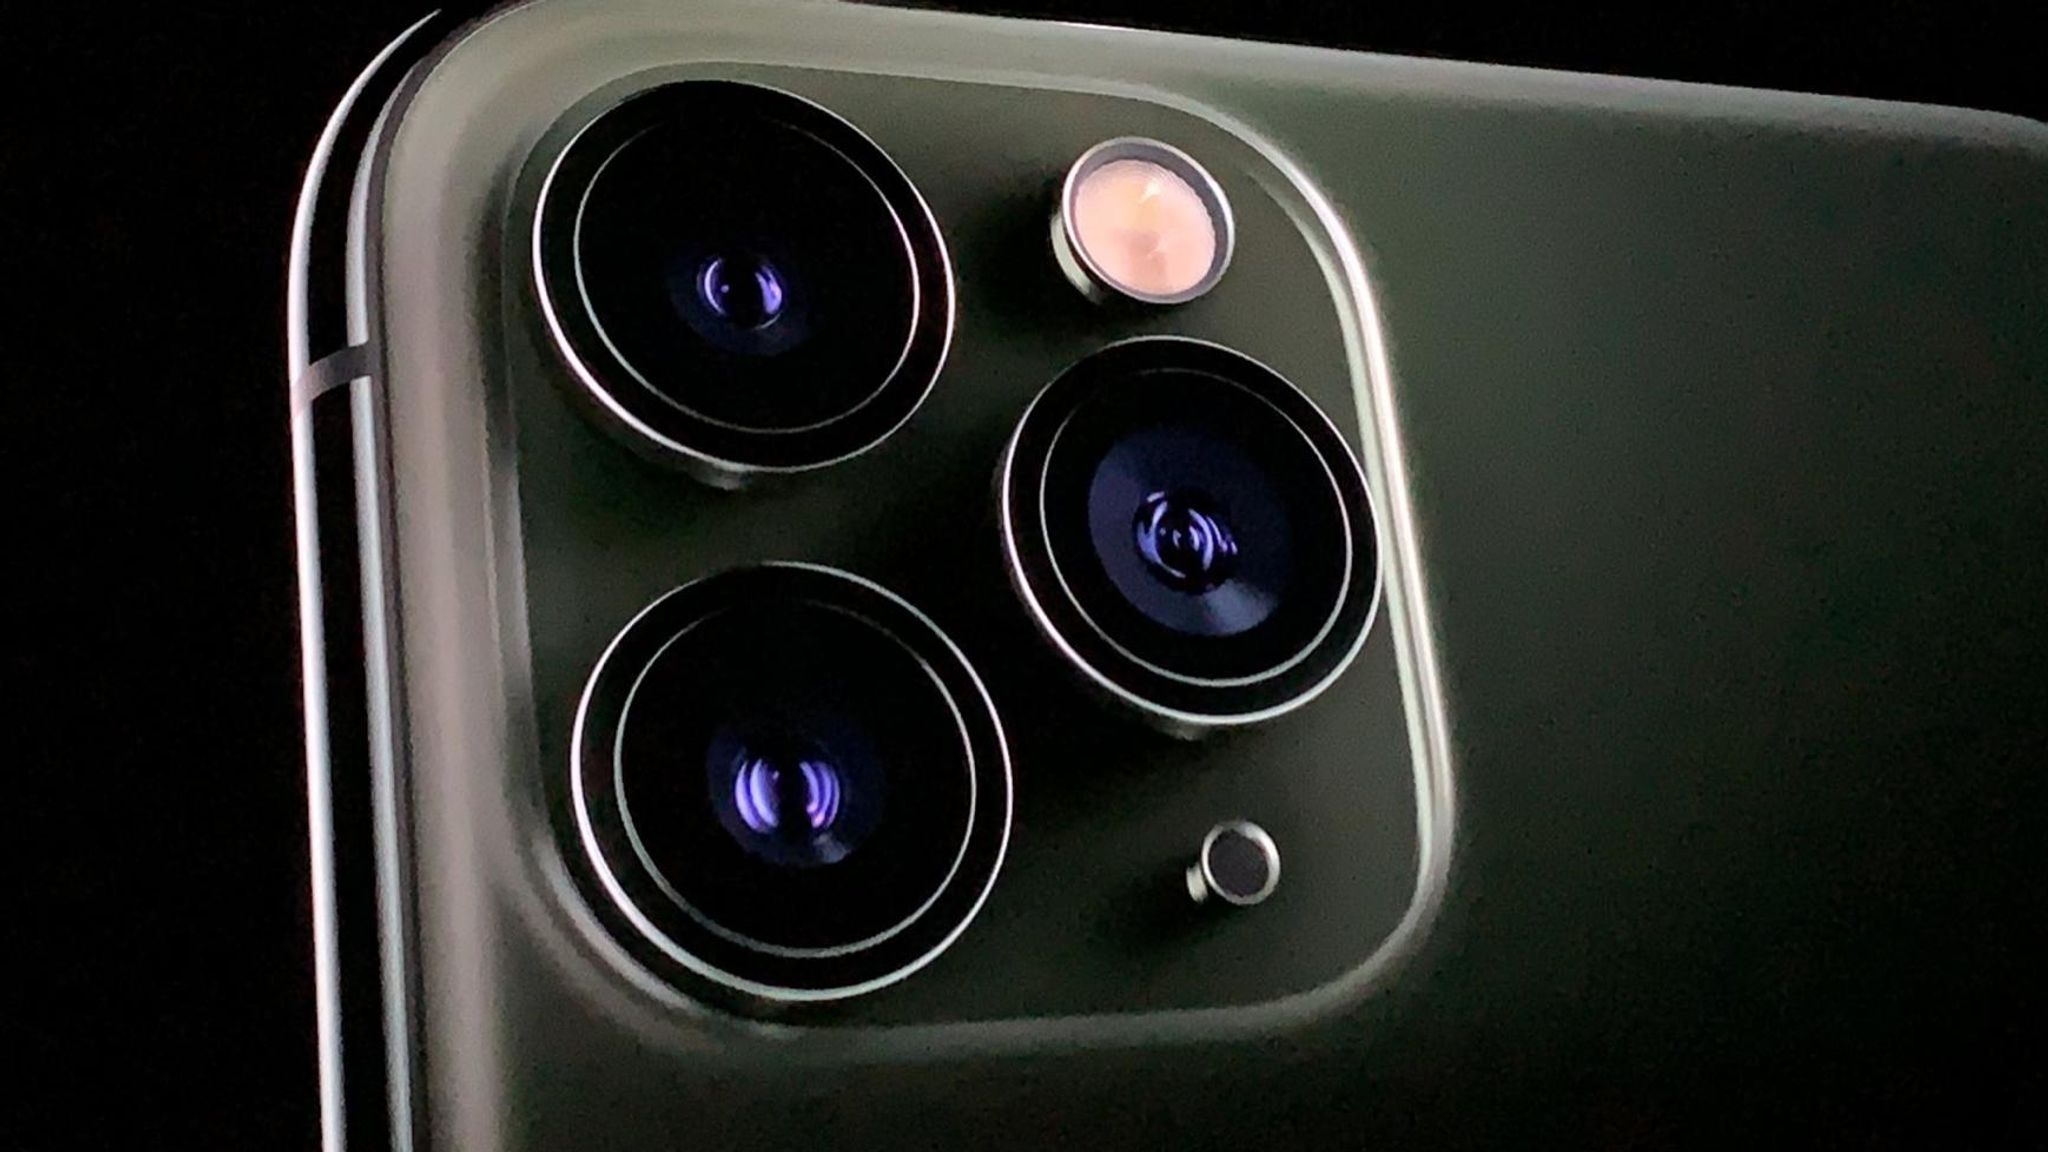 New Iphone 11 Pro Camera Triggers Trypophobia Fear Of Tiny Holes Science Tech News Sky News